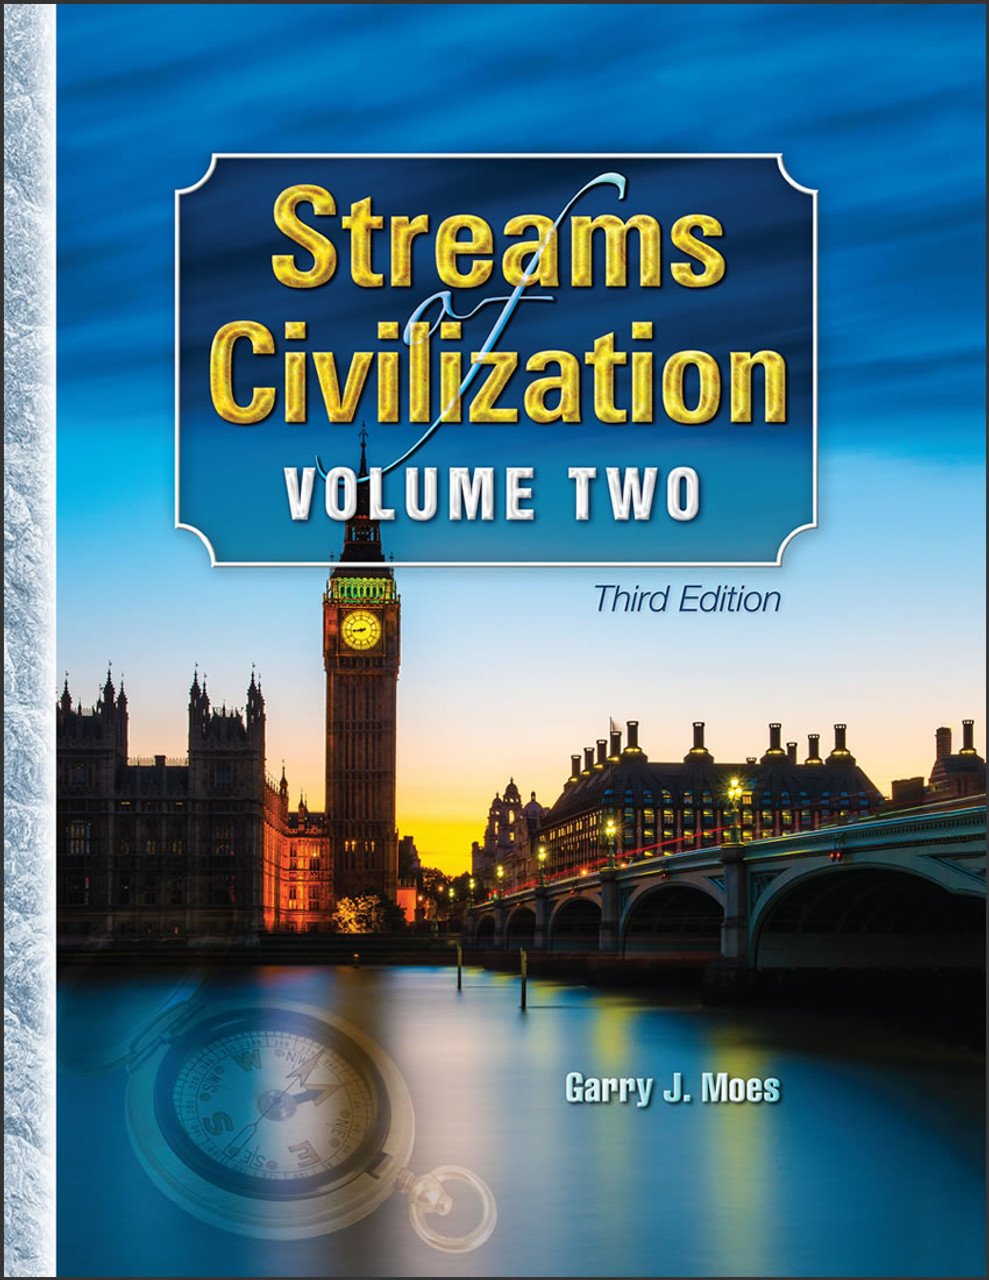 Streams of Civilization: Volume Two, 3rd edition